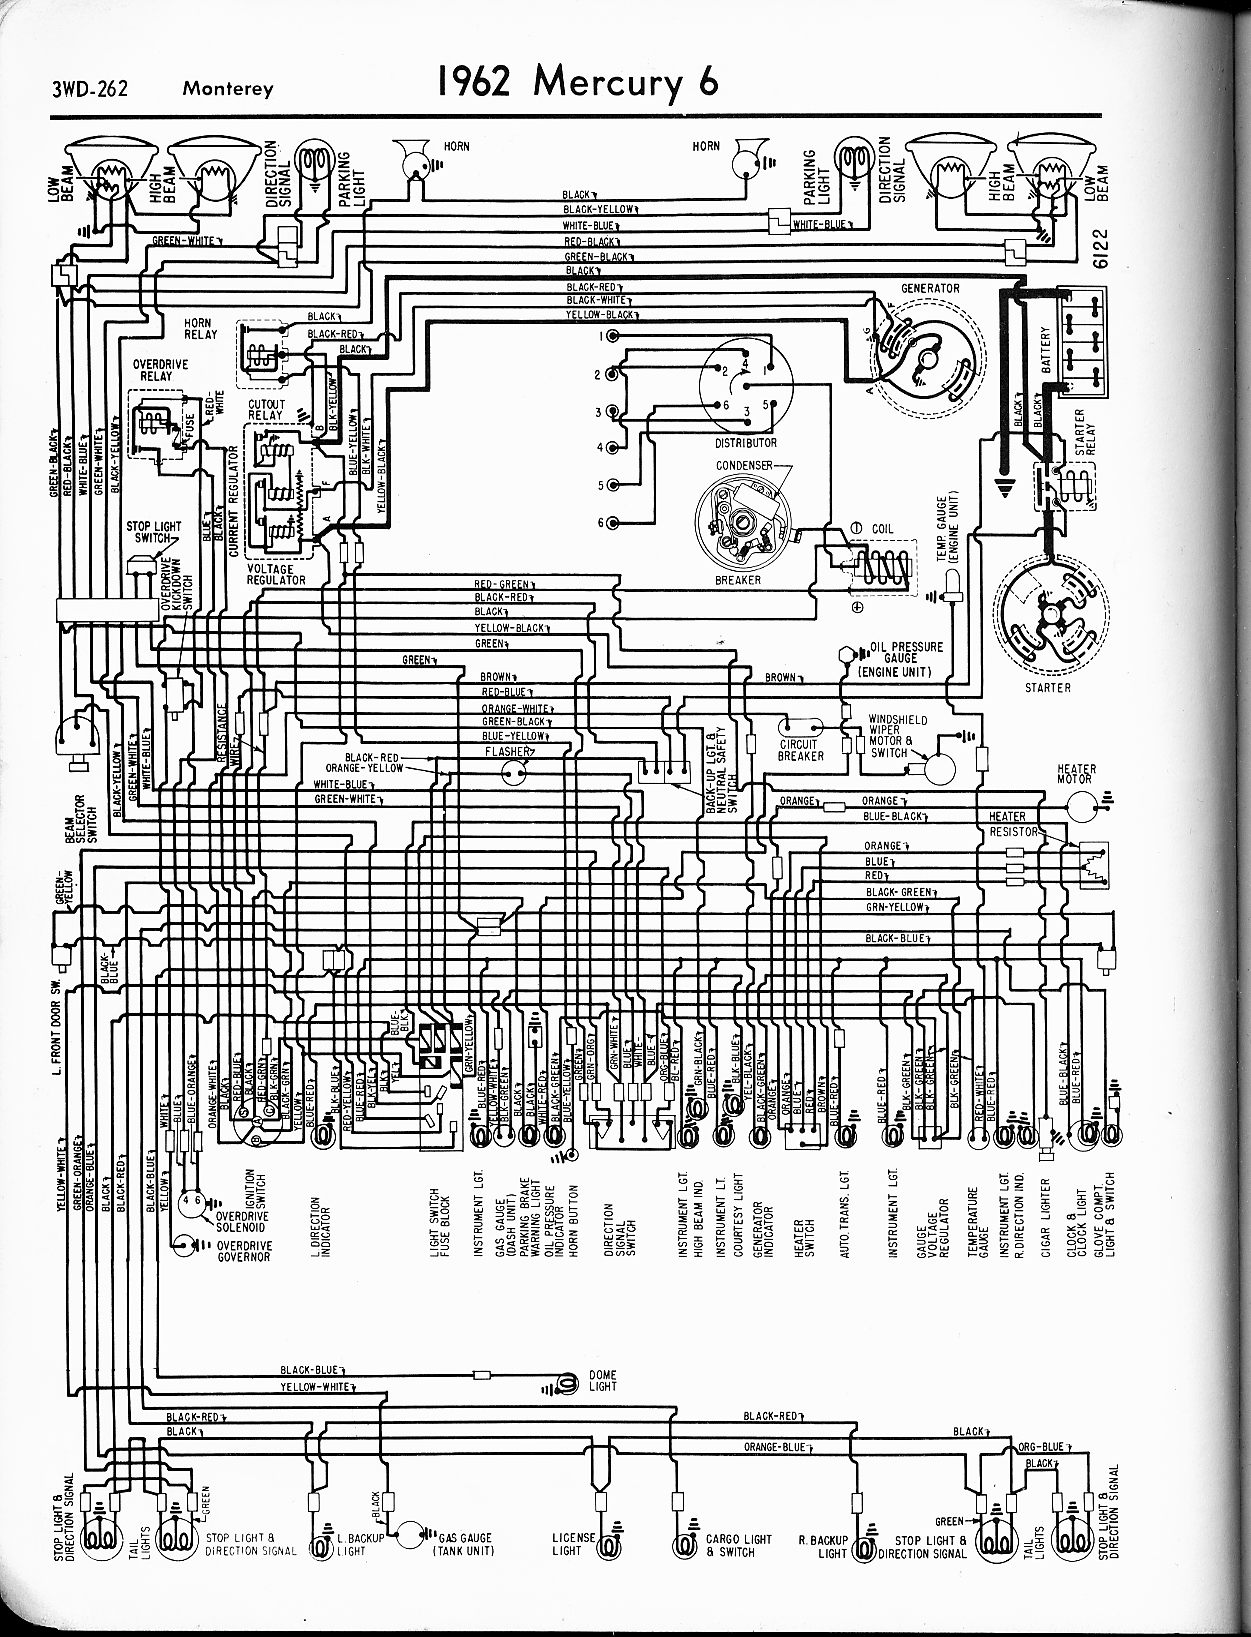 MWire5765 262 mercury wiring diagrams the old car manual project Chevy Wiring Harness Diagram at creativeand.co